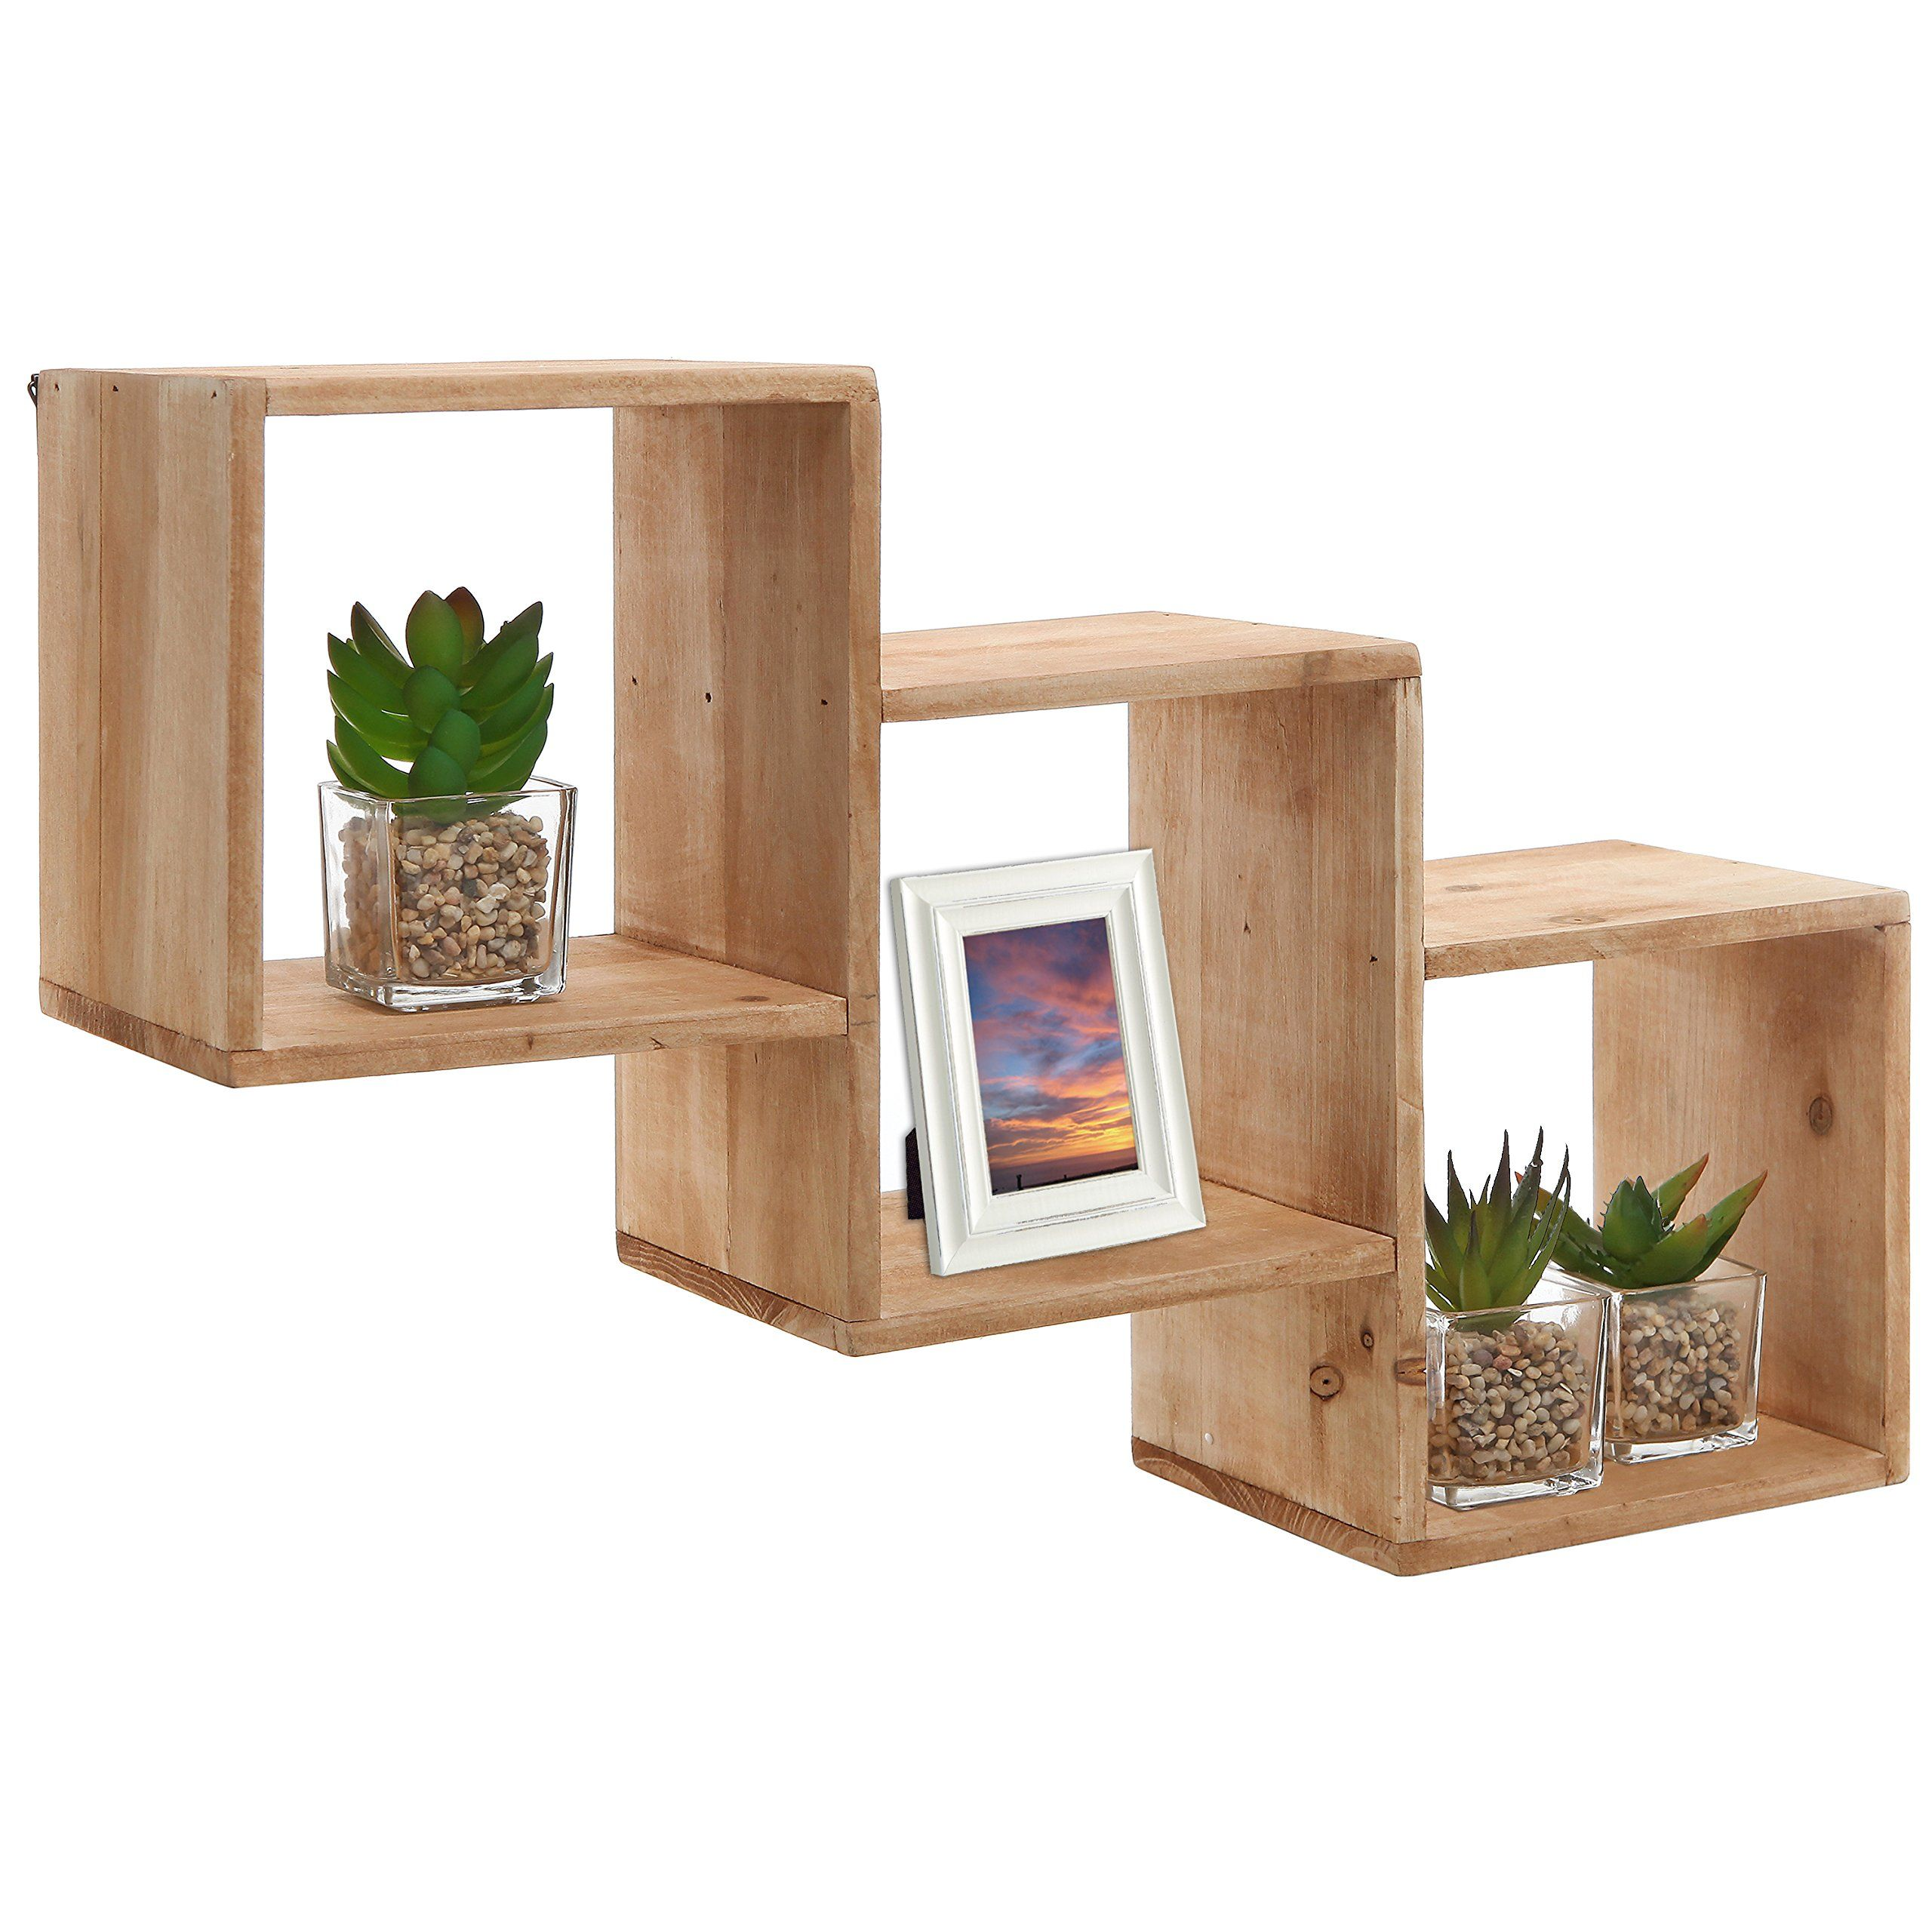 Grande Country Rustic Wall Mounted Unfinished Wood Squarediagonal Storage Shelves Rack Country Rustic Wall Mounted Unfinished Wood Make Small Square Floating Shelves Small Square Floating Shelf